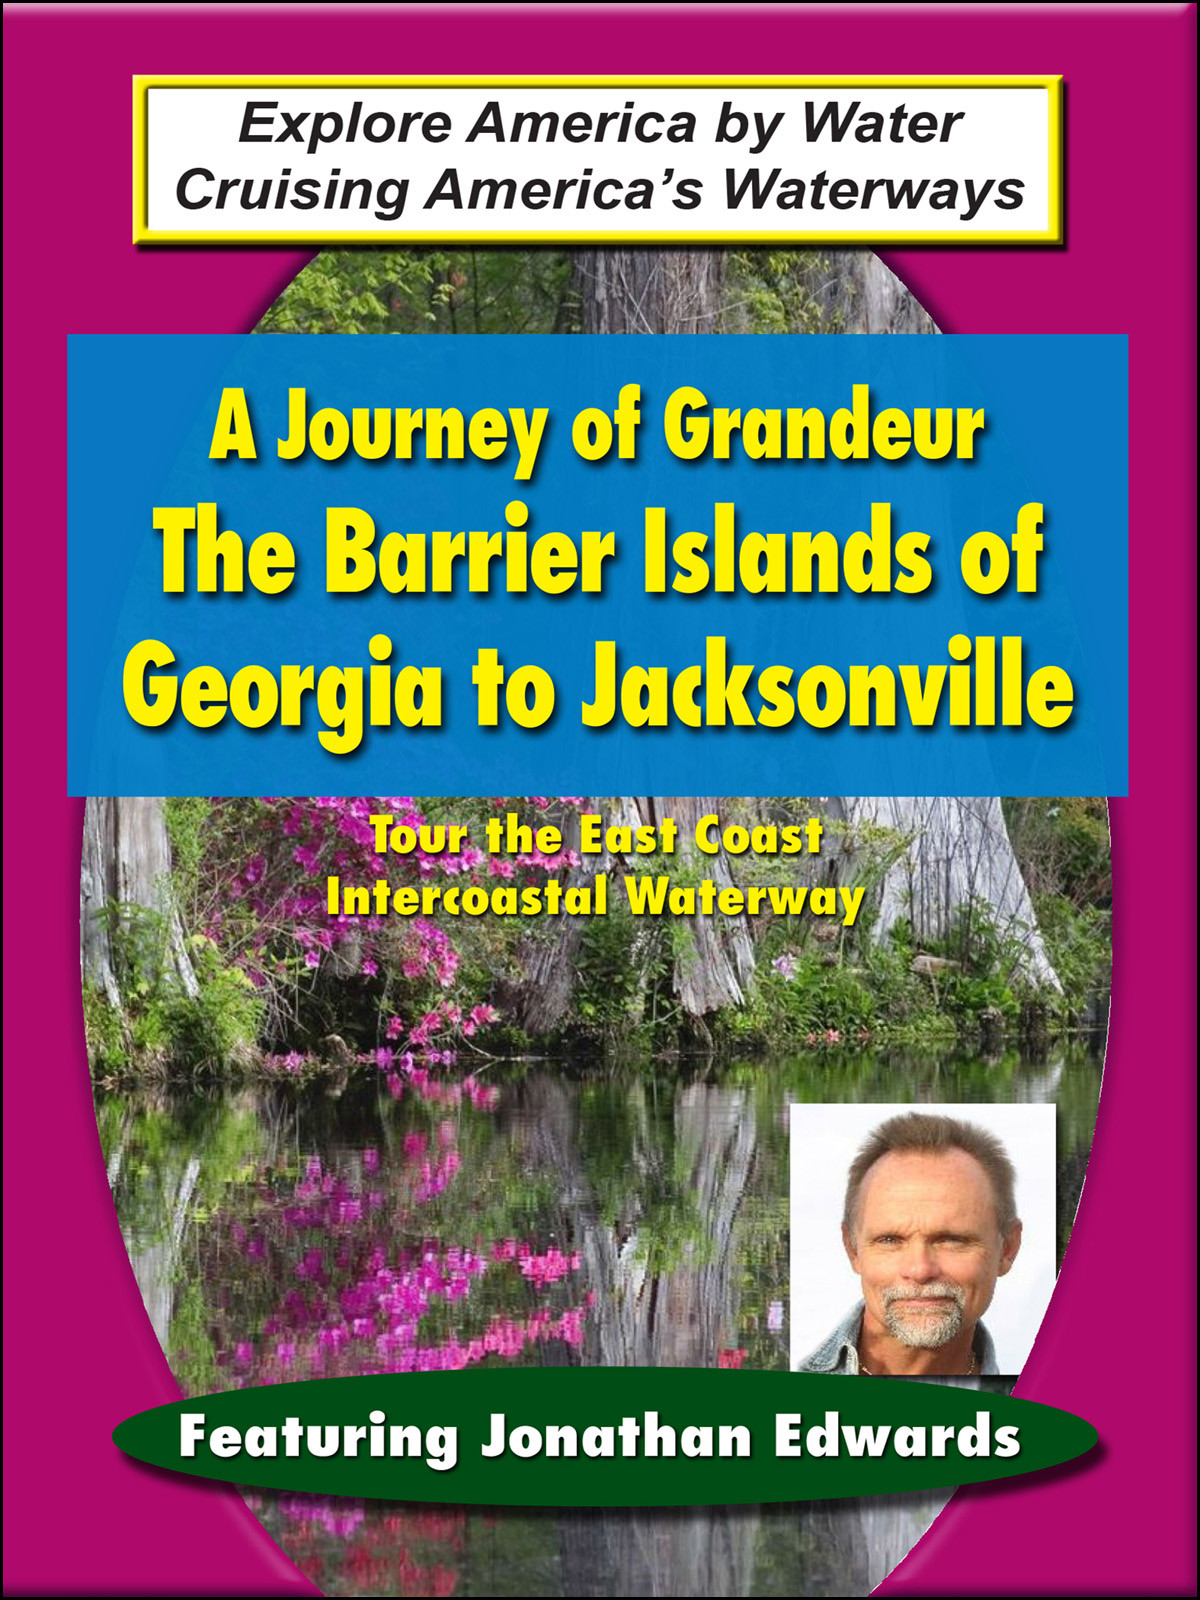 T8896 - A Journey of Grandeur The Barrier Island of Georgia to Jacksonville